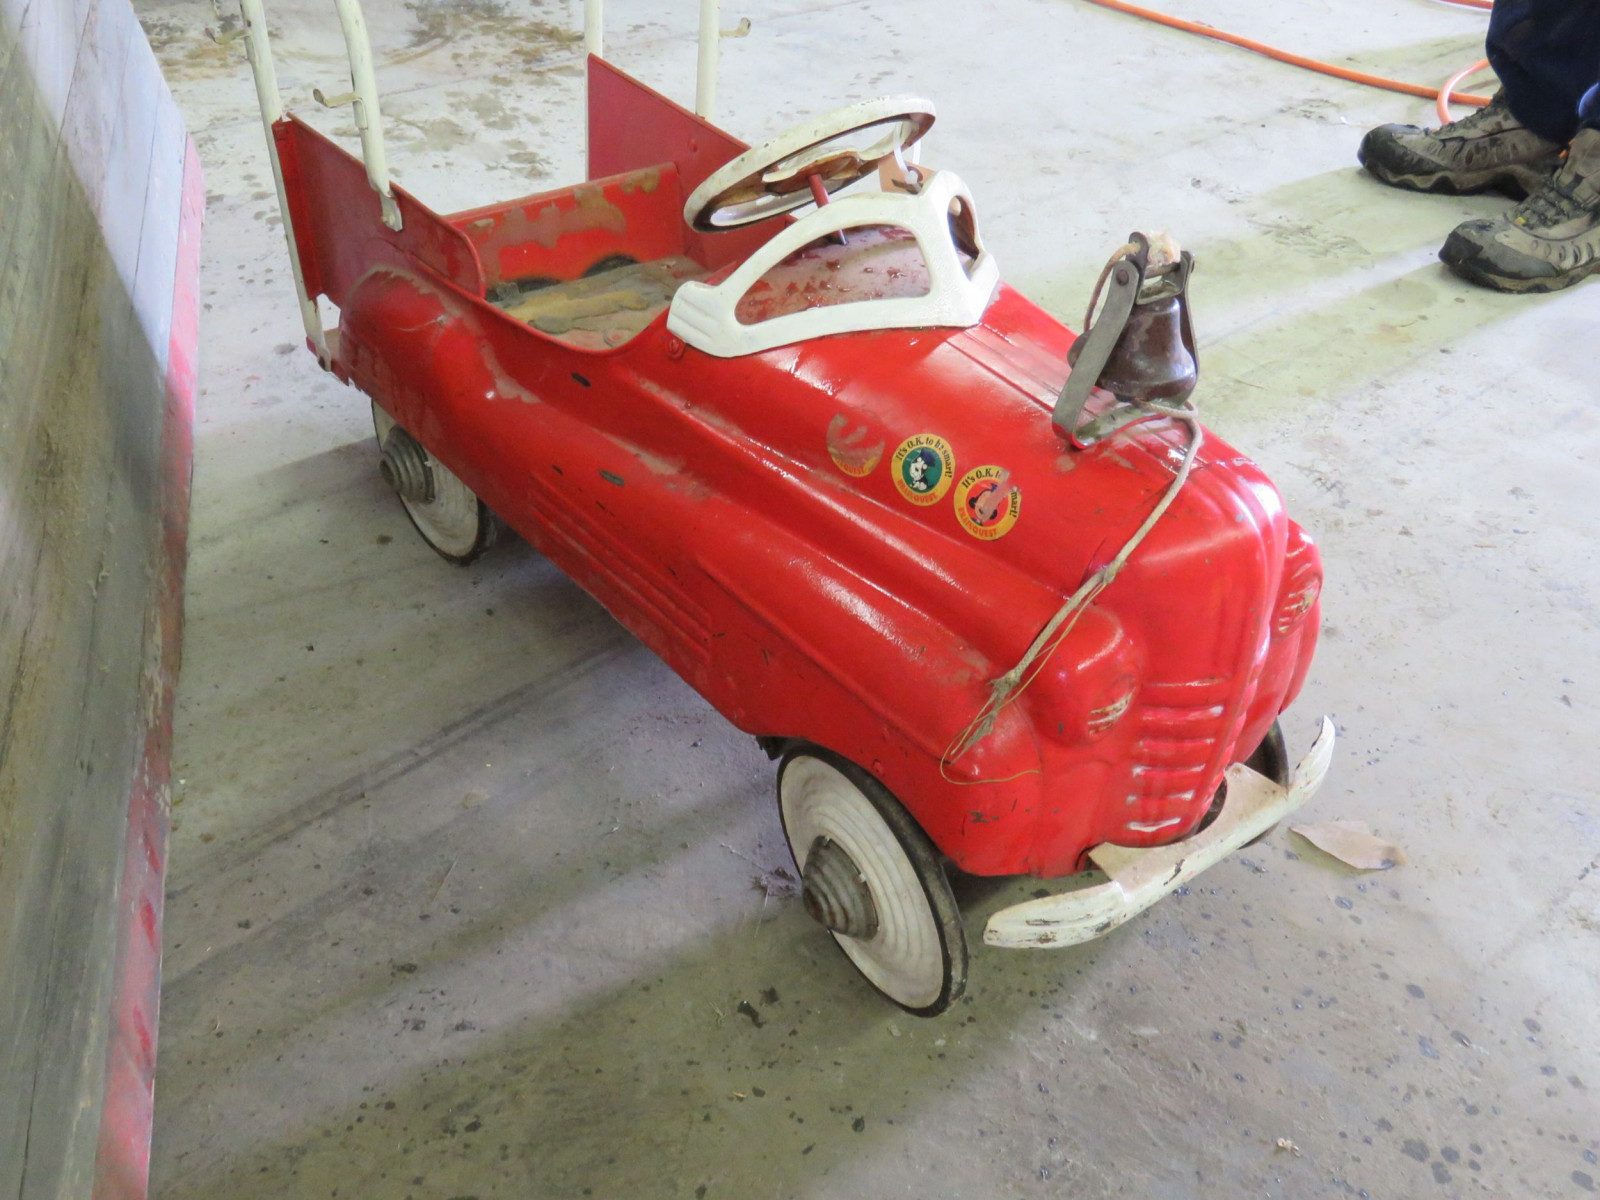 Vintage Murray Fire Chief pedal Car for Restore - Image 3